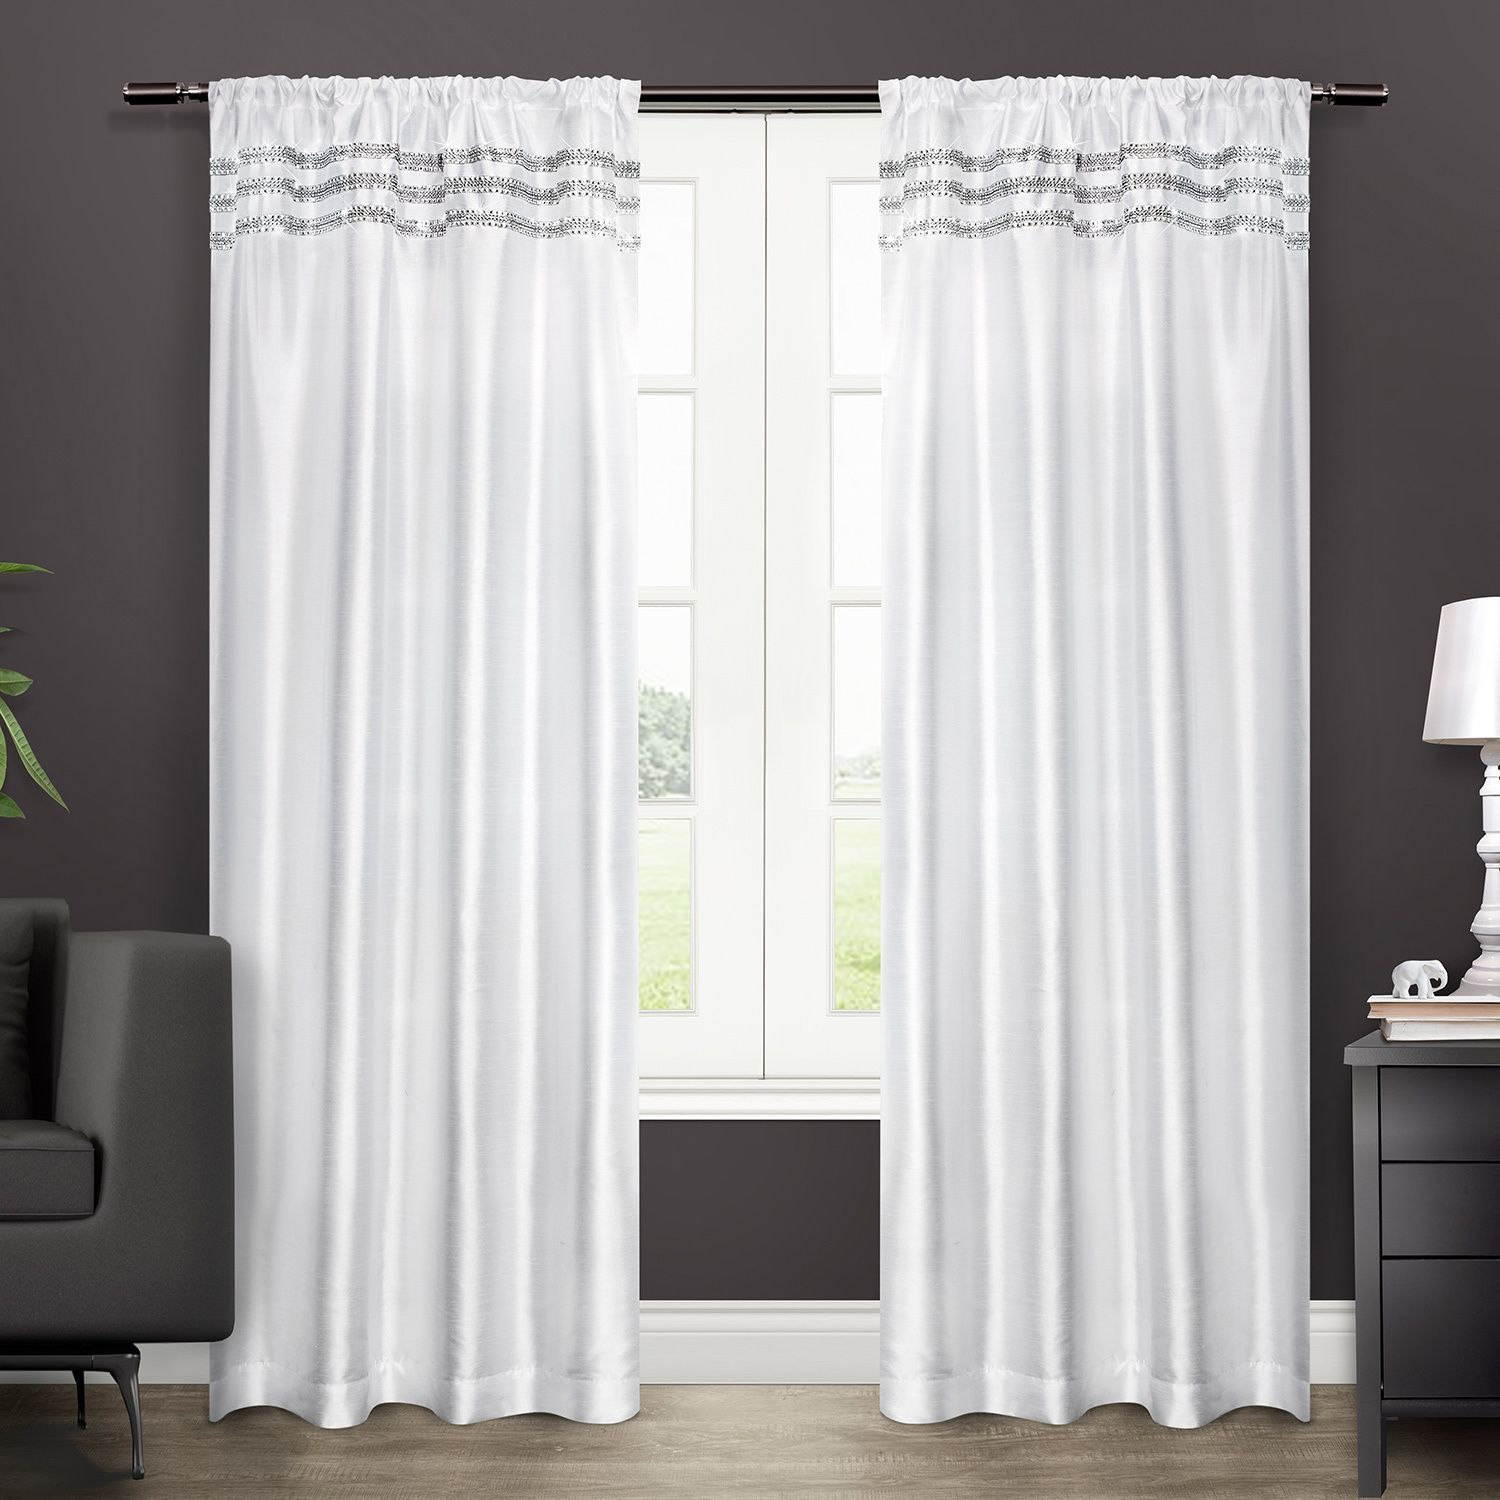 Ati Home Bling Rod Pocket 96 Inch Curtain Panel Pair Bling Winter